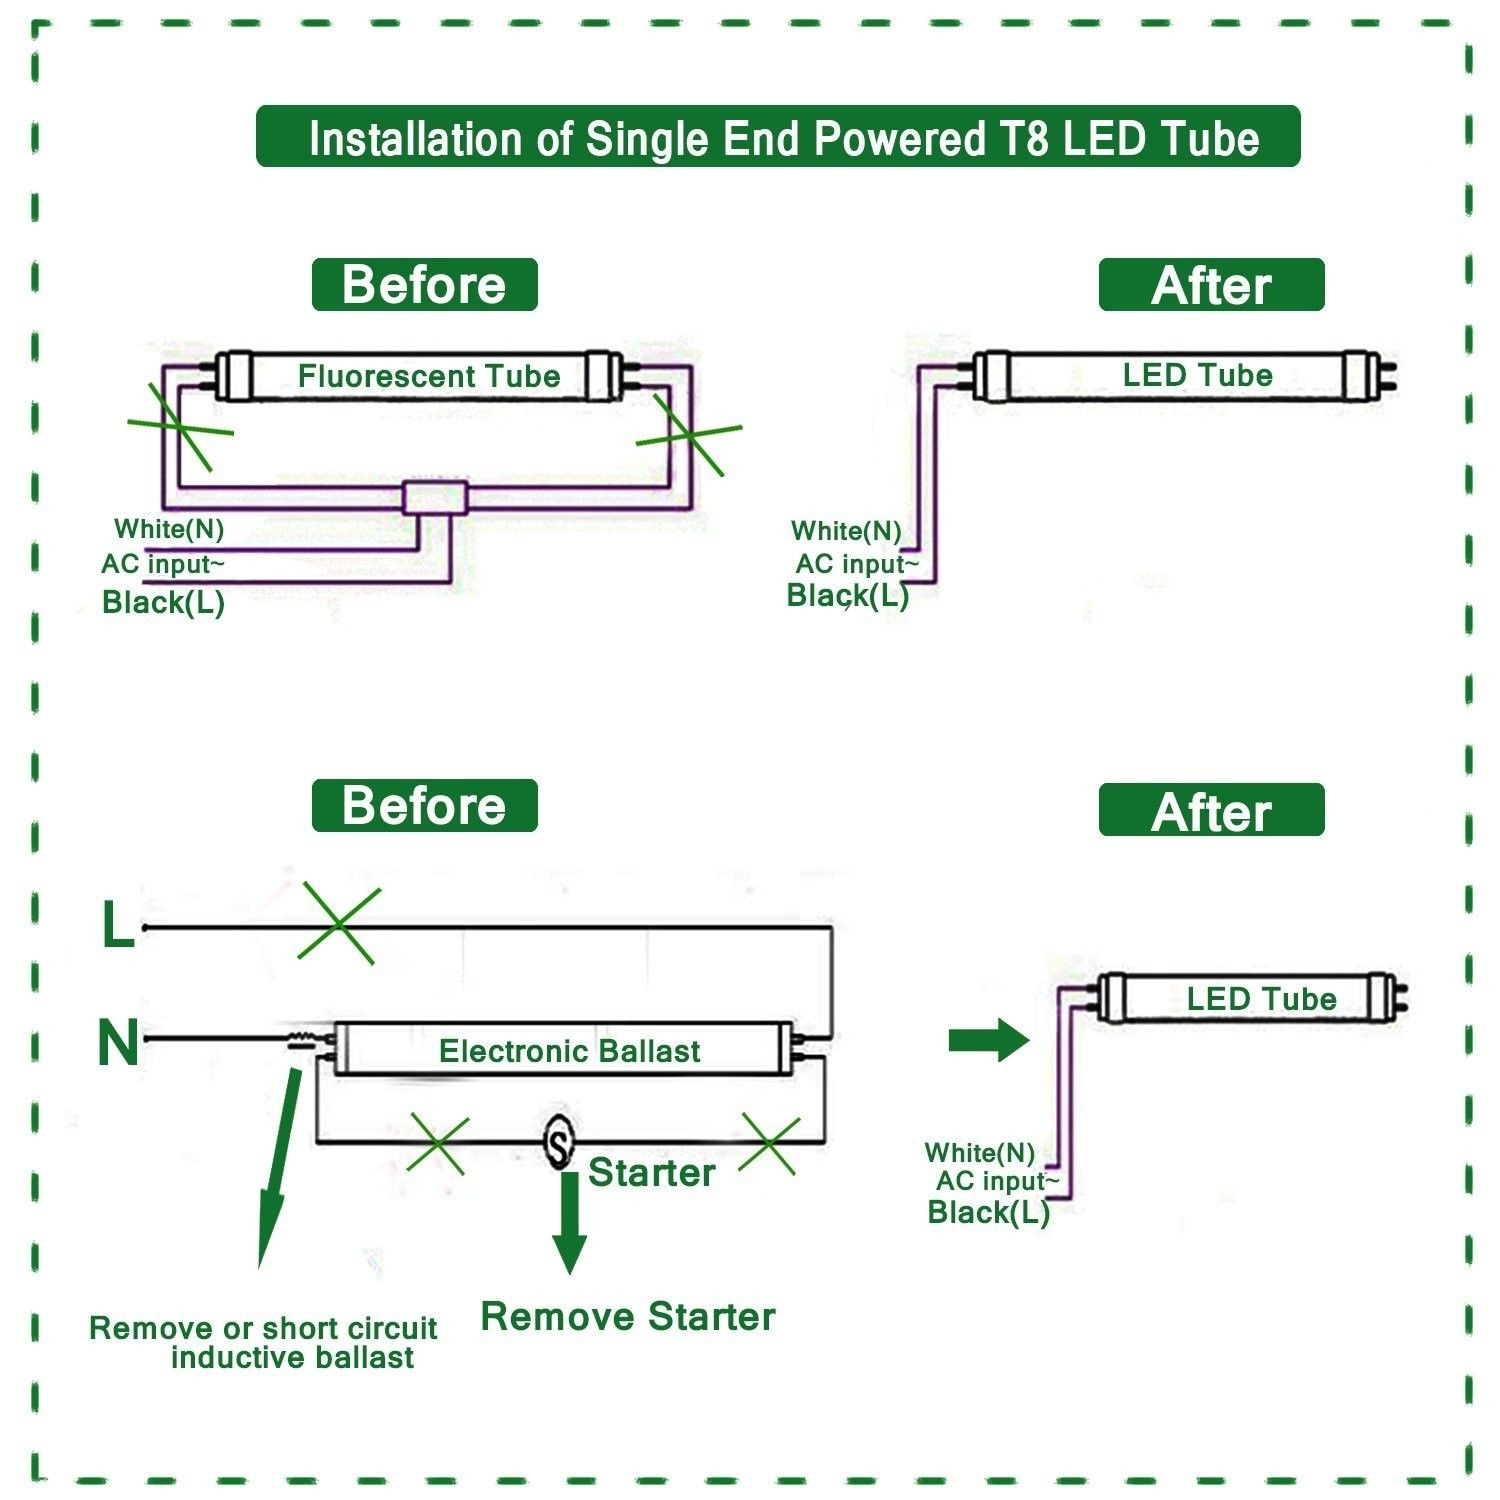 Lovely Wiring Diagram Fluorescent Light Switch Diagrams Digramssample Diagramimages Wiringdiagramsample Wiri Led Fluorescent Tube Led Tubes Led Tube Light